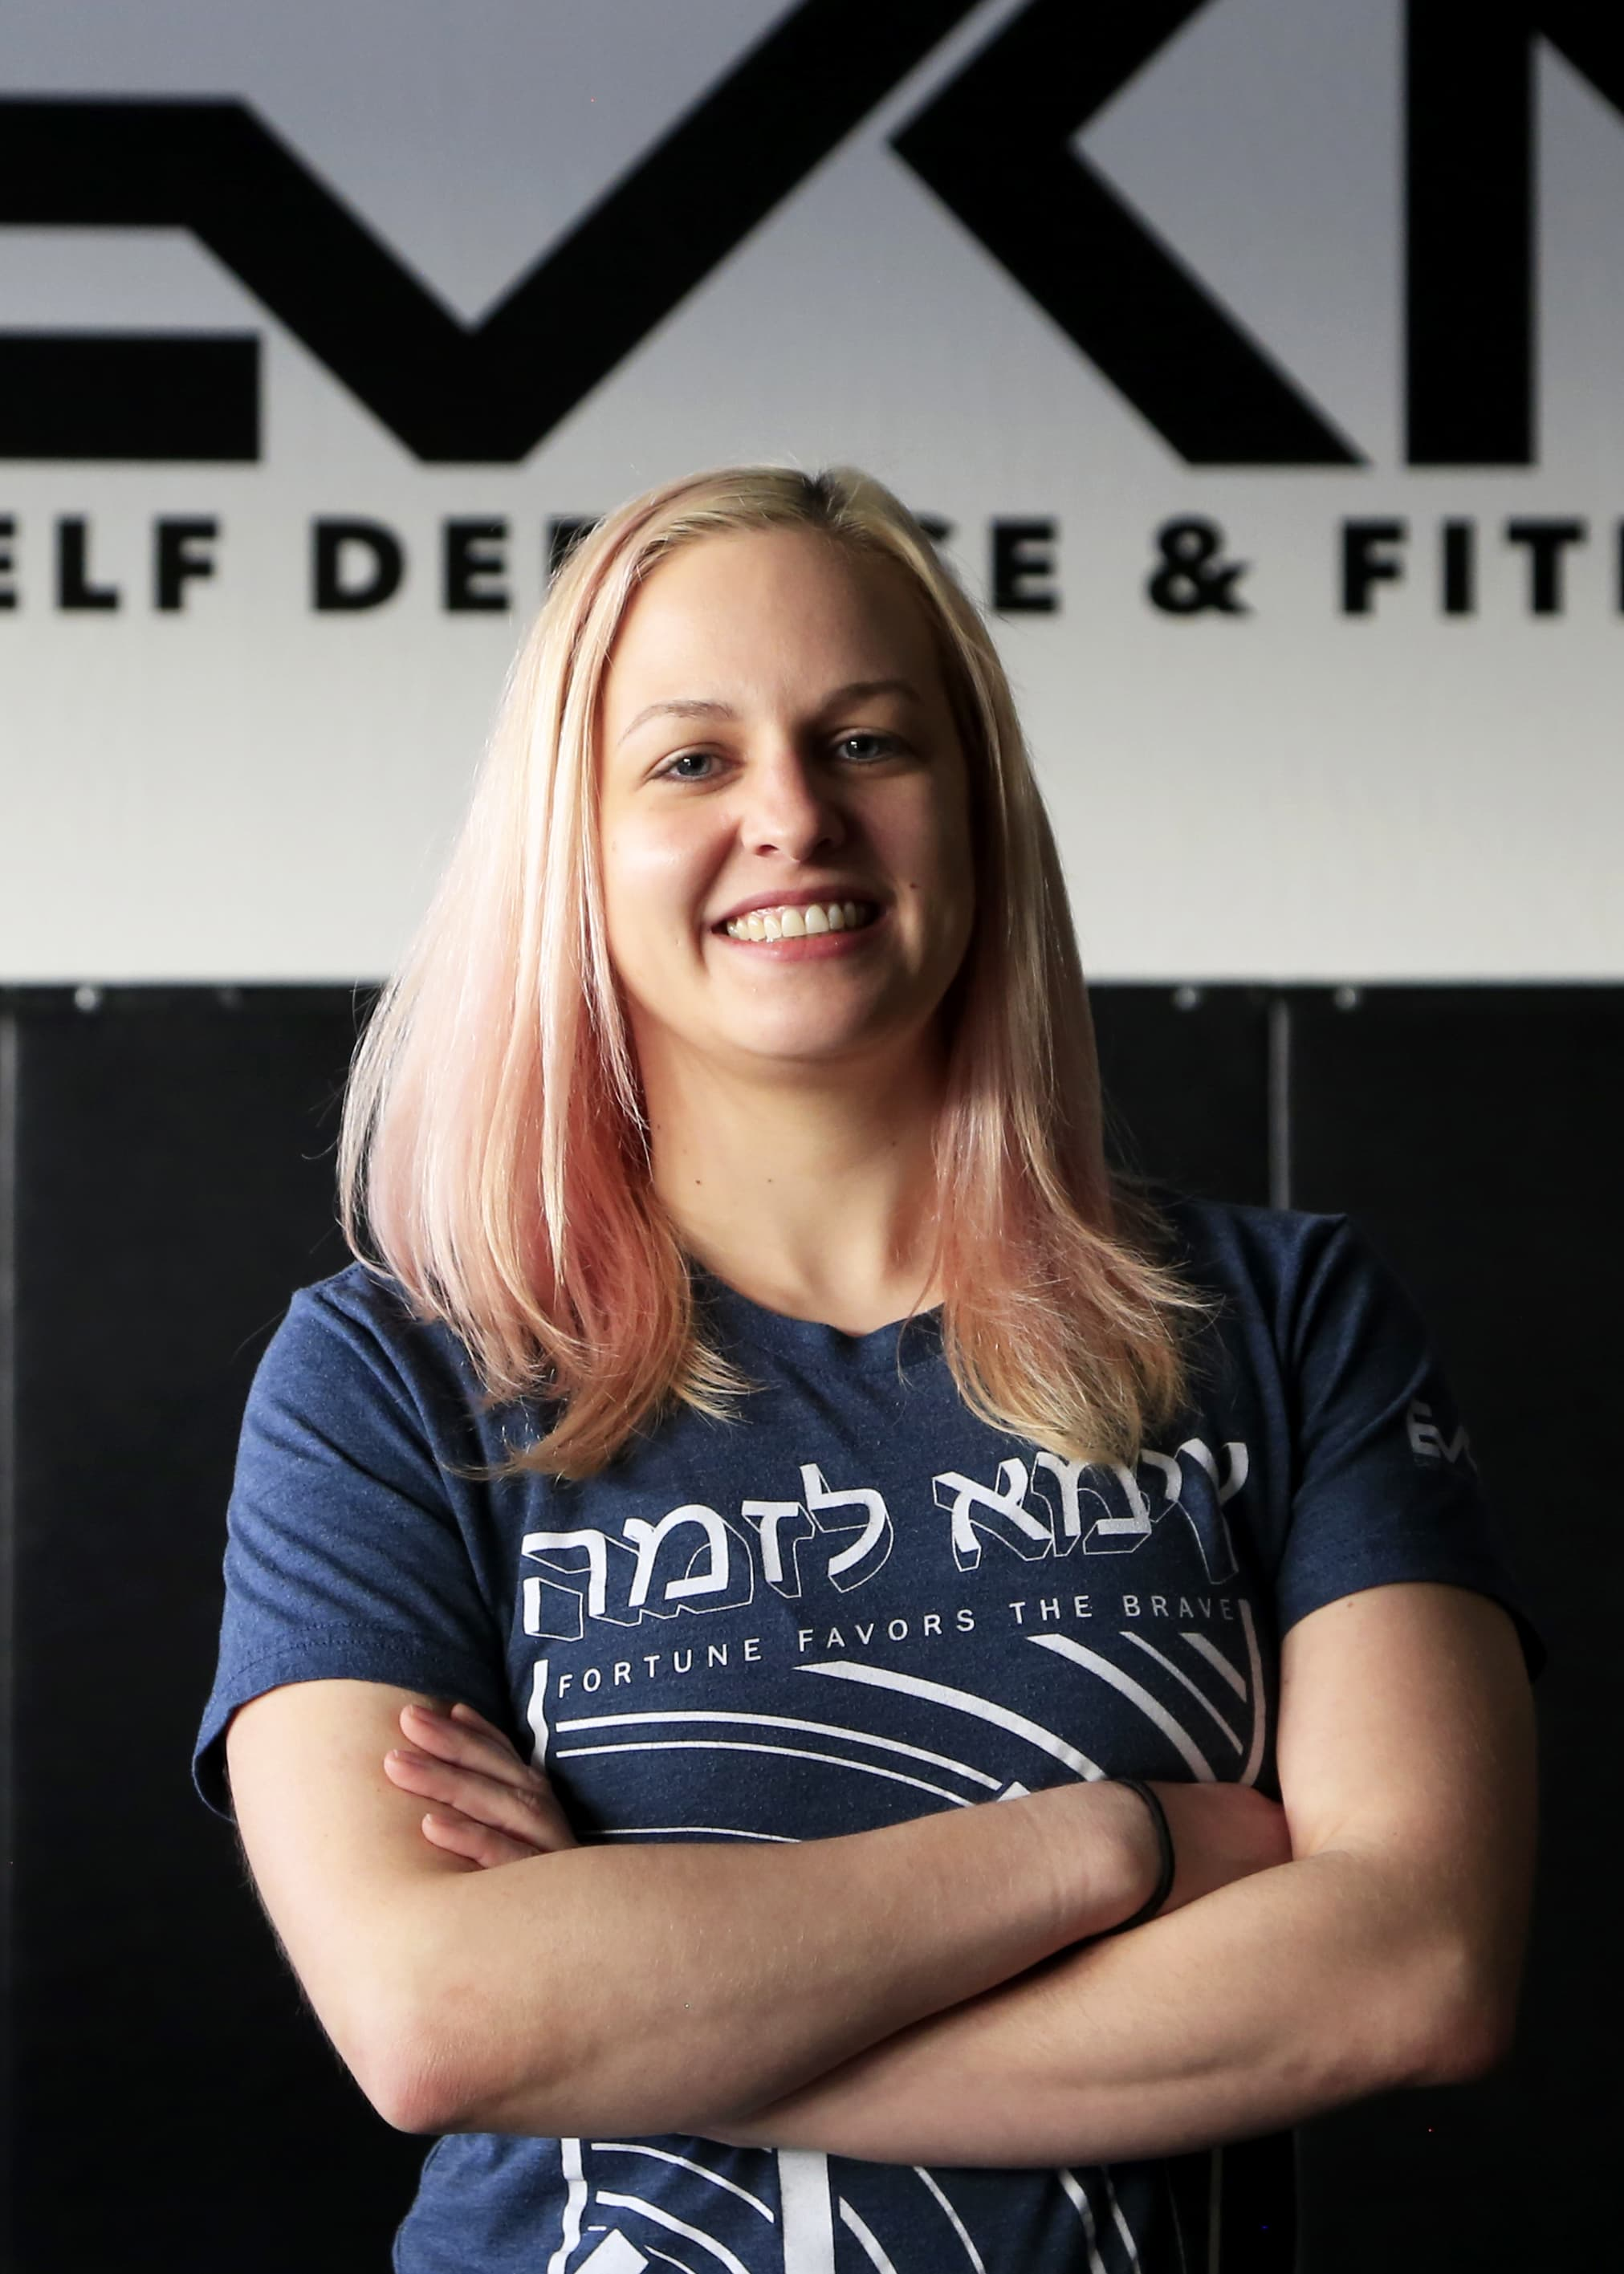 Michele Harrison in Tempe - EVKM Self Defense & Fitness